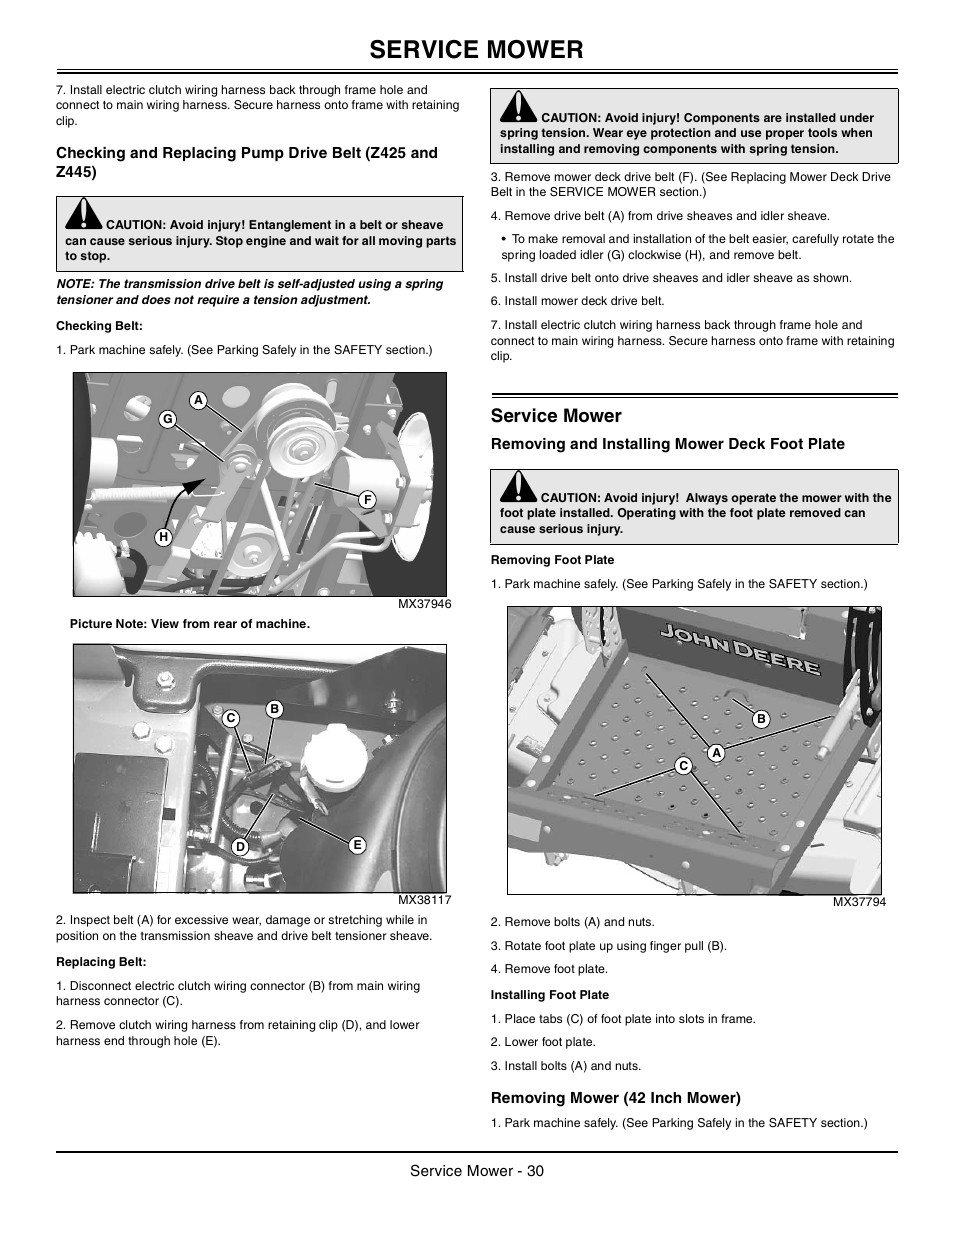 checking belt replacing belt service mower john deere z425 checking belt replacing belt service mower john deere z425 user manual page 31 48